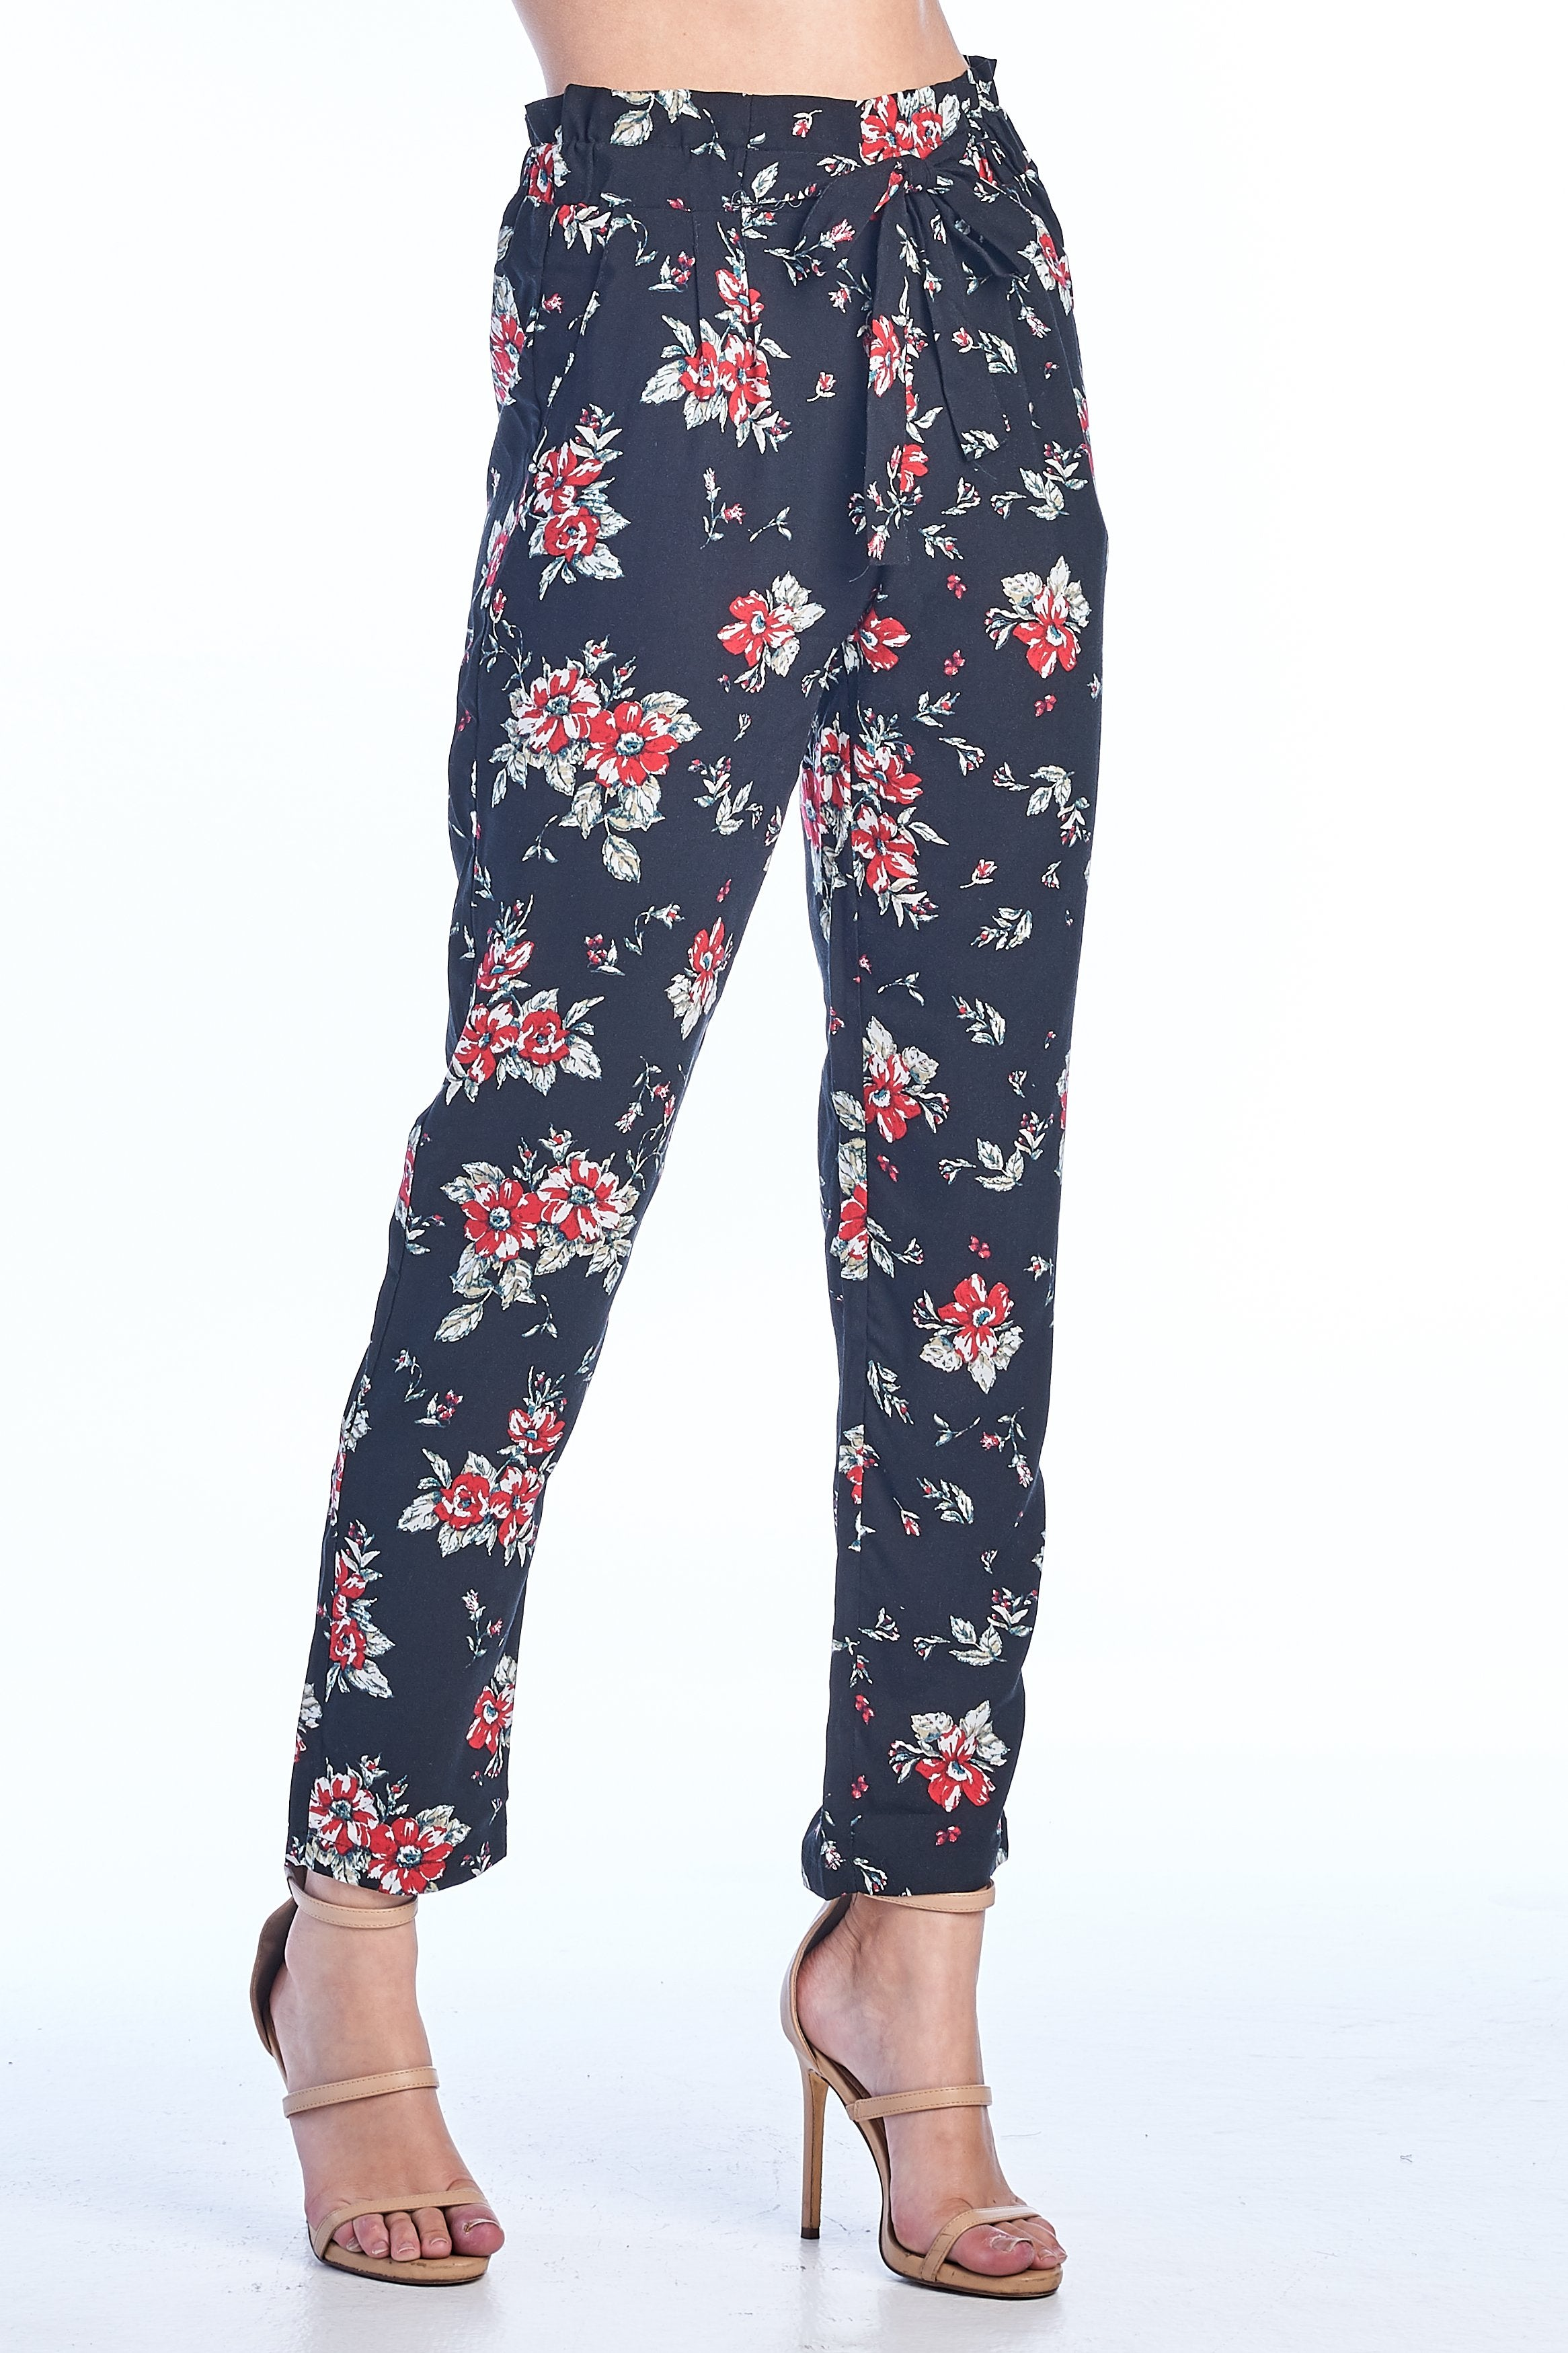 Women's High-Rise Tie Belt Elasticized Waist Floral Print Pants